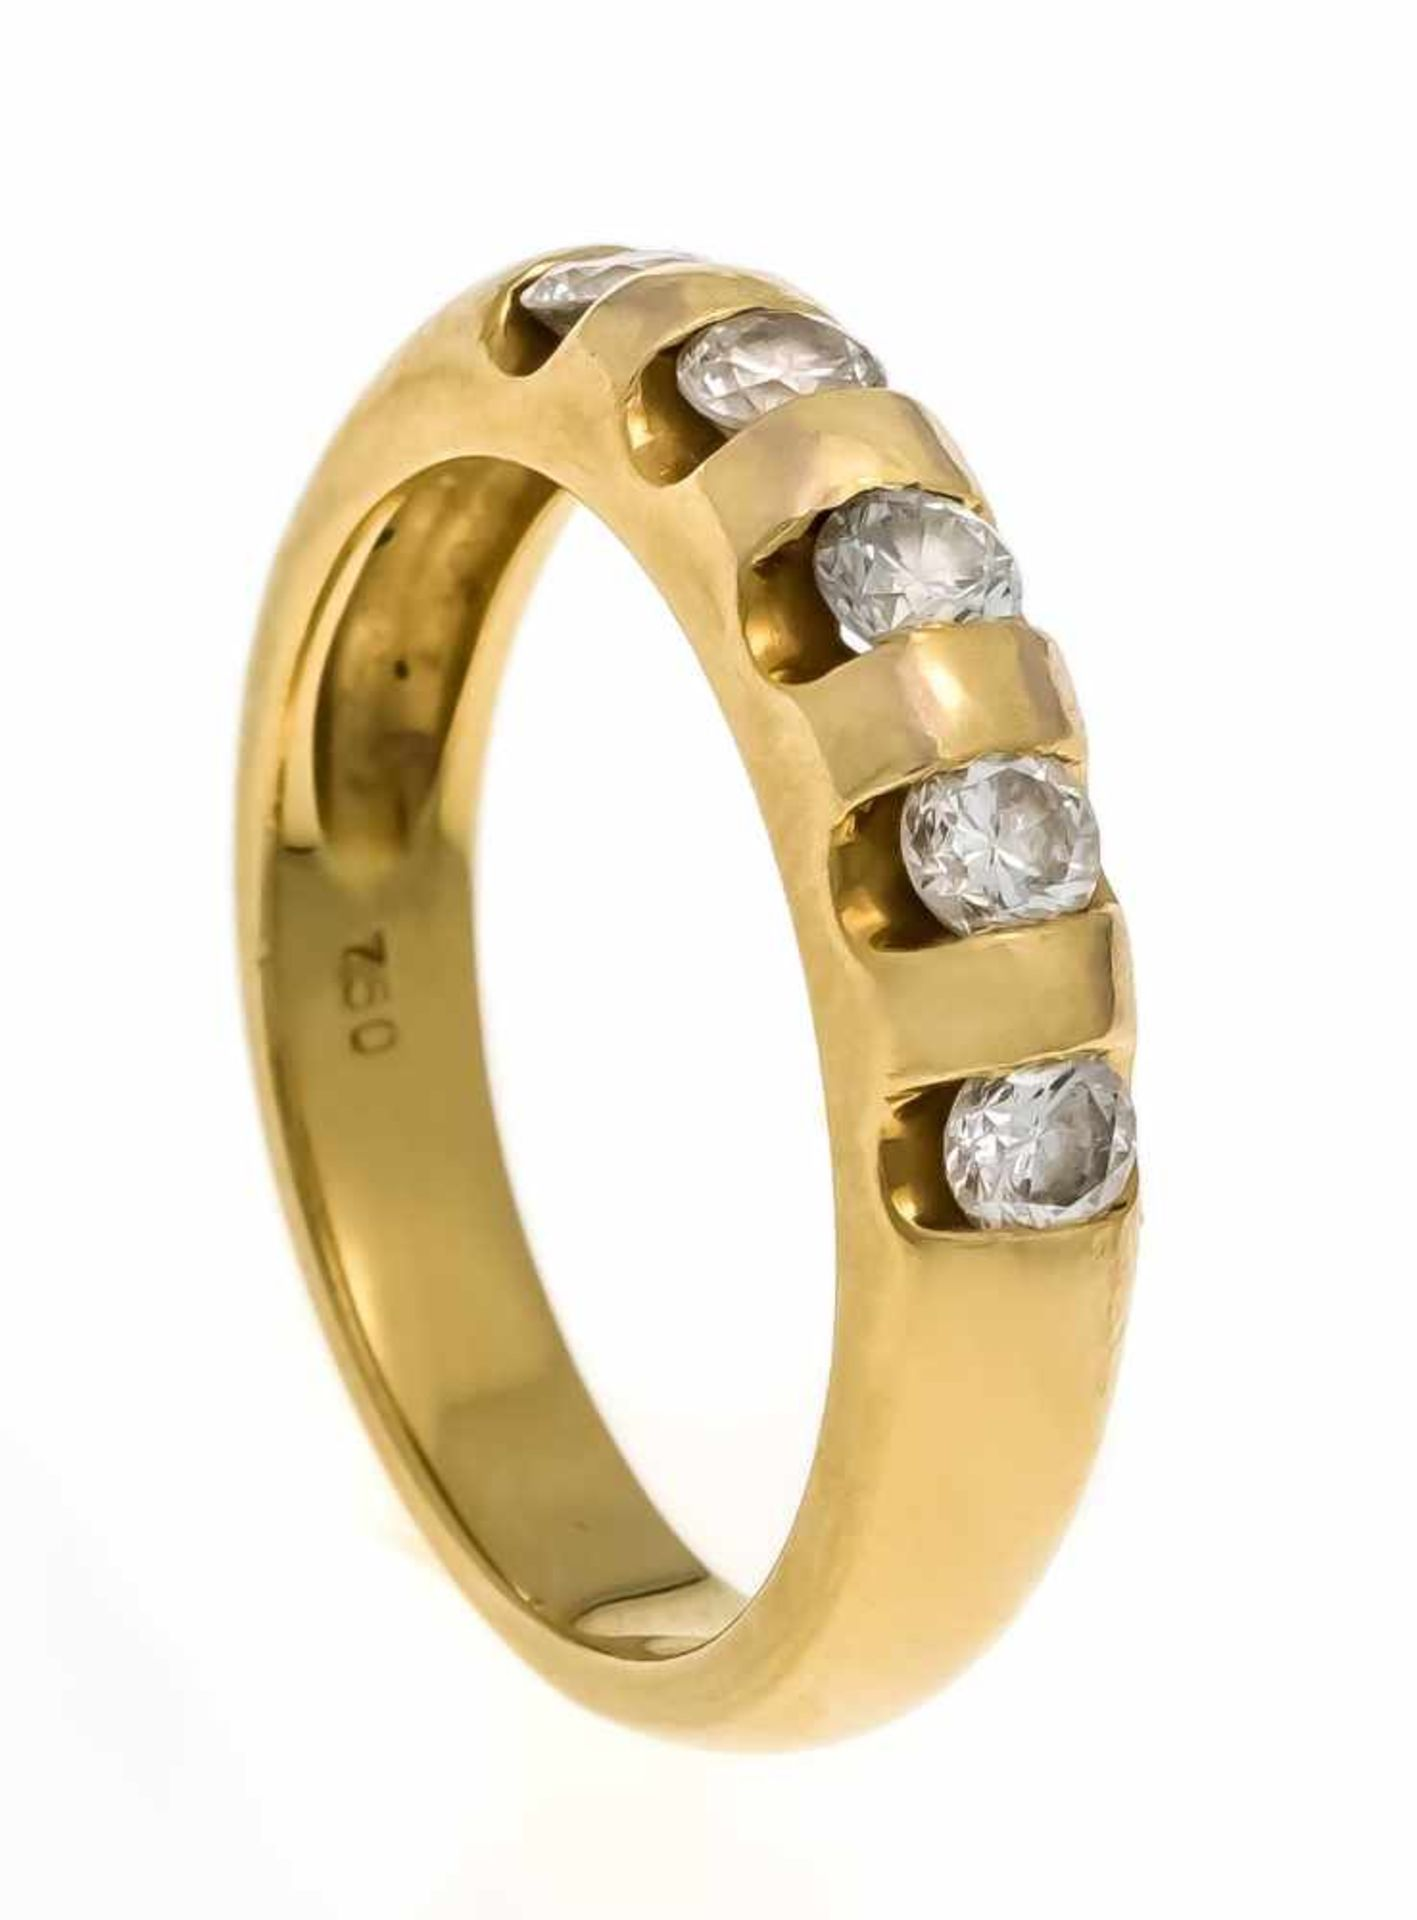 Brillant-Ring GG 750/000 mit 5 Brillanten, zus. 0,57 ct l.get.W-W/VS, RG 55, 6,0 gDiamond ring, gold